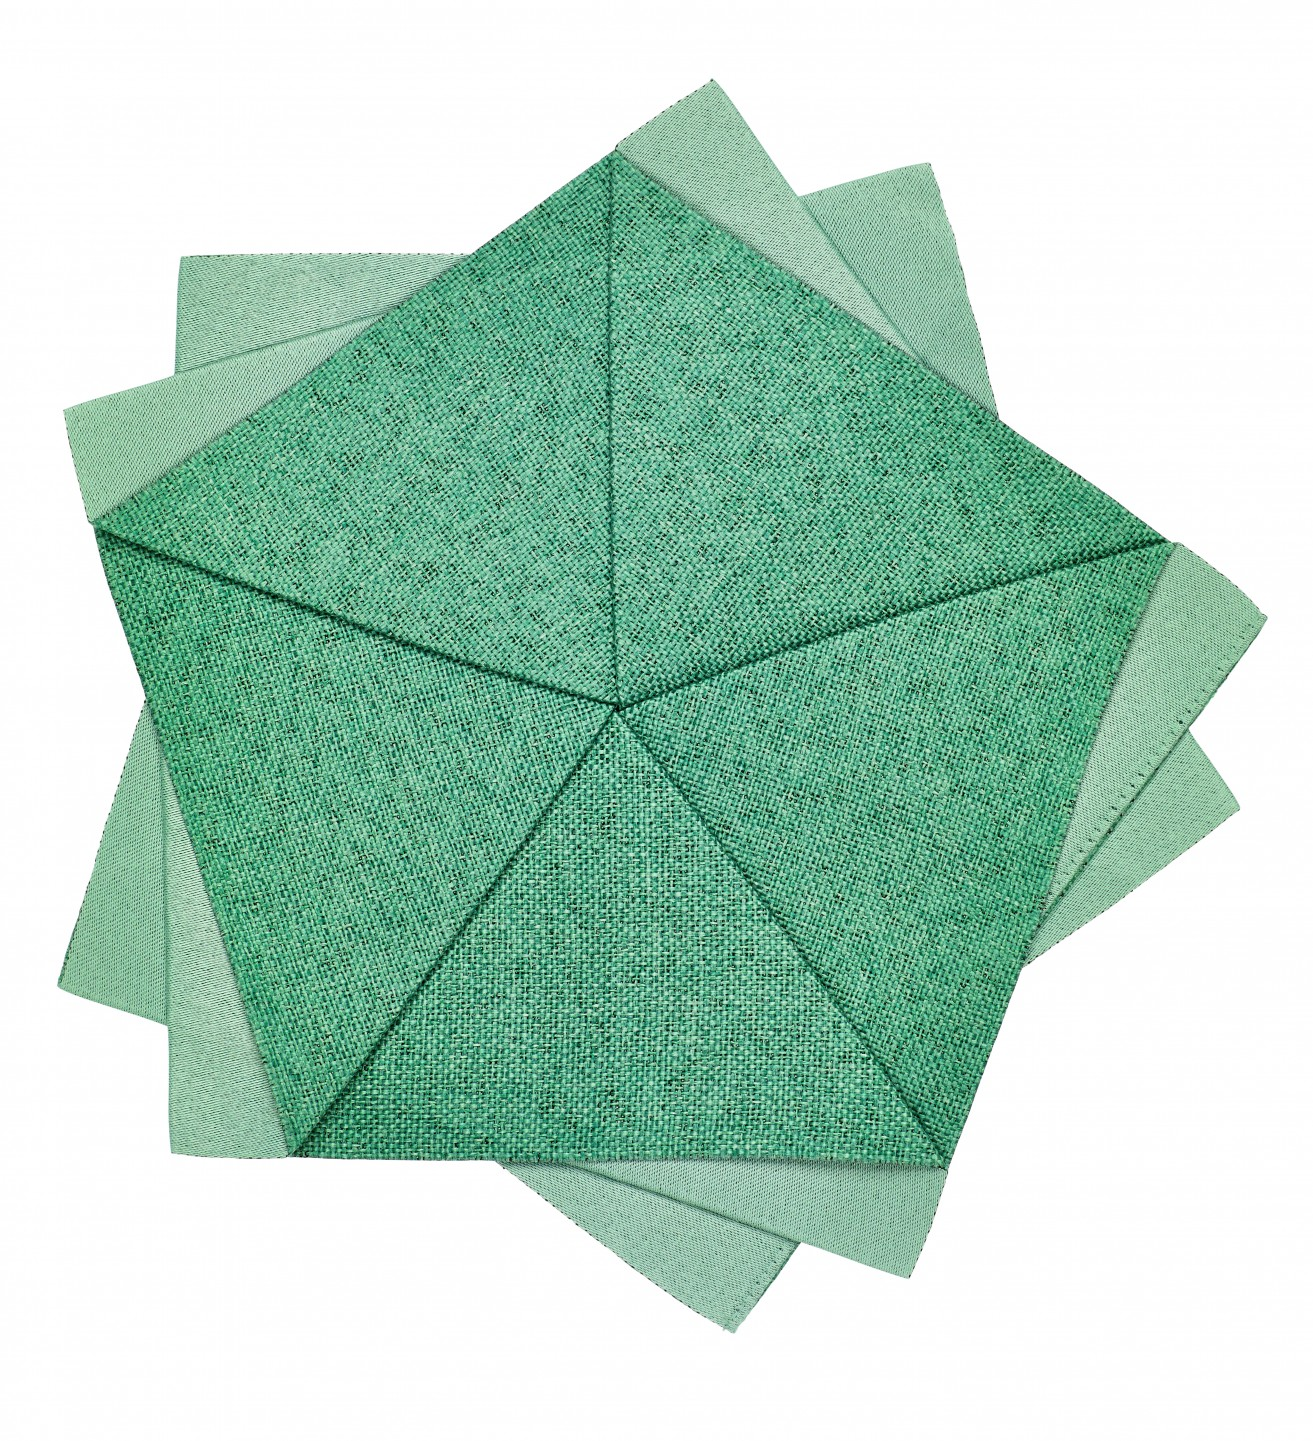 I_X_I_Tableflower_15cm_green